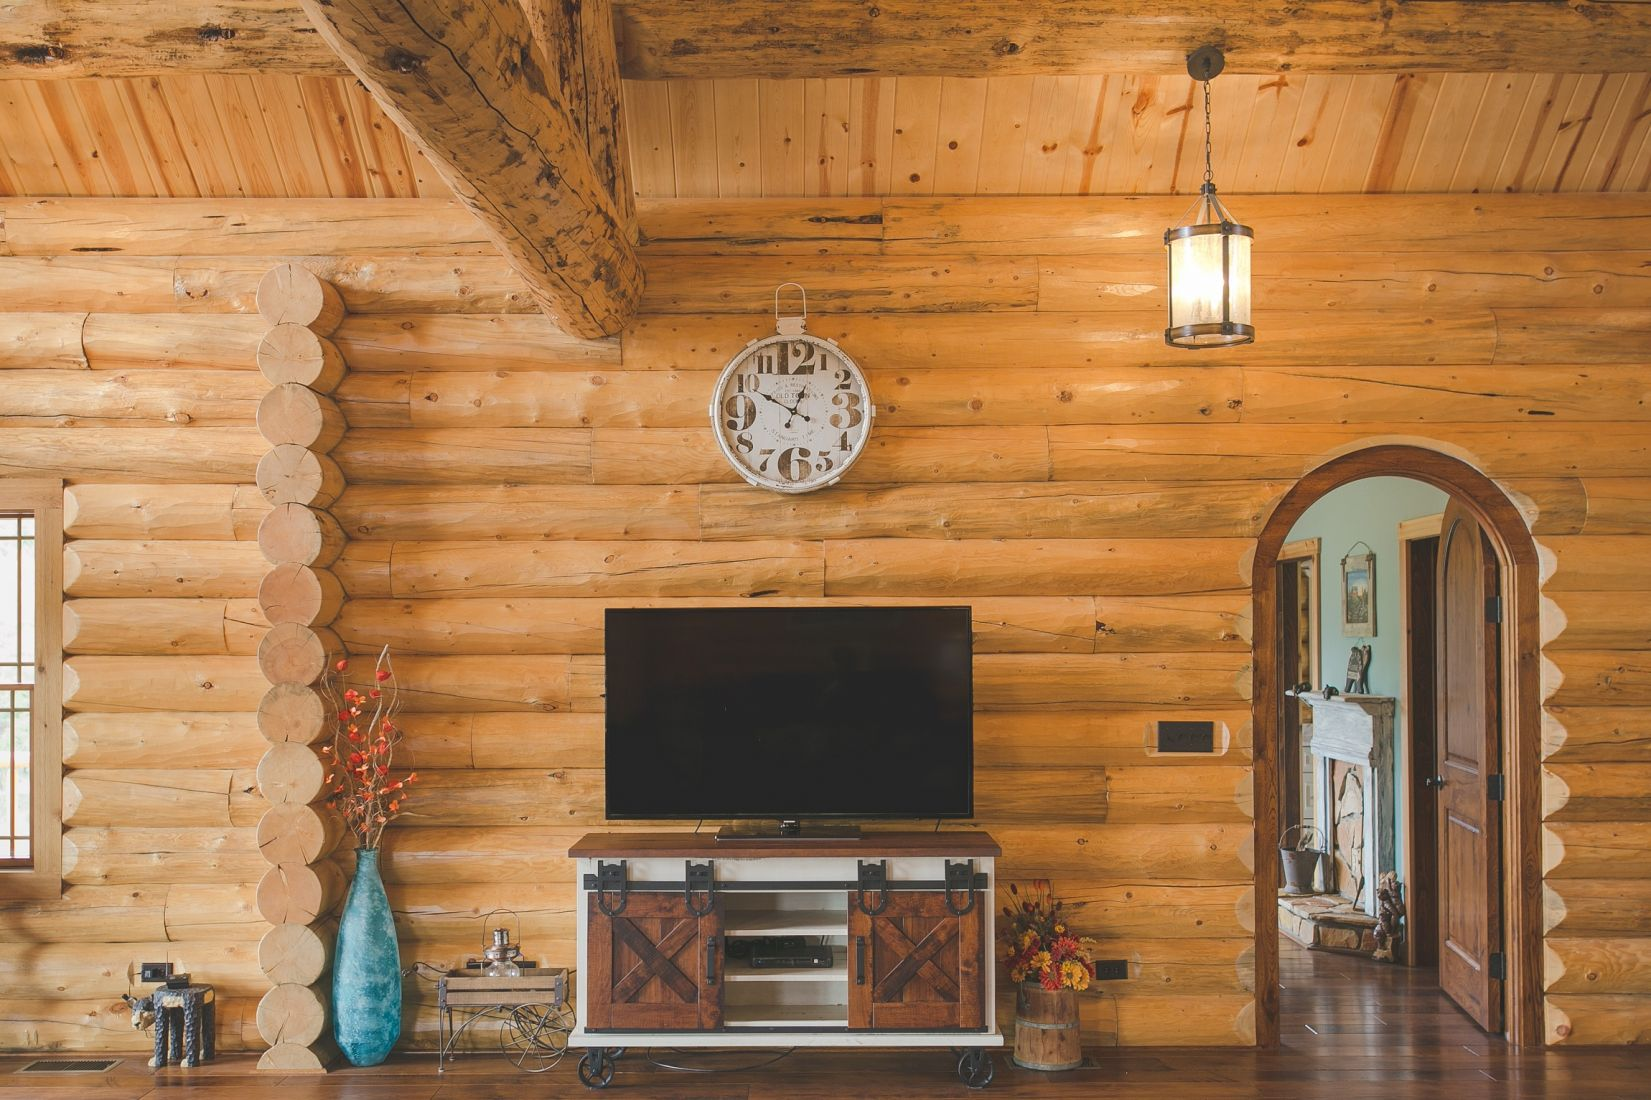 Interior Log Siding on Walls with Arched Bedroom Door